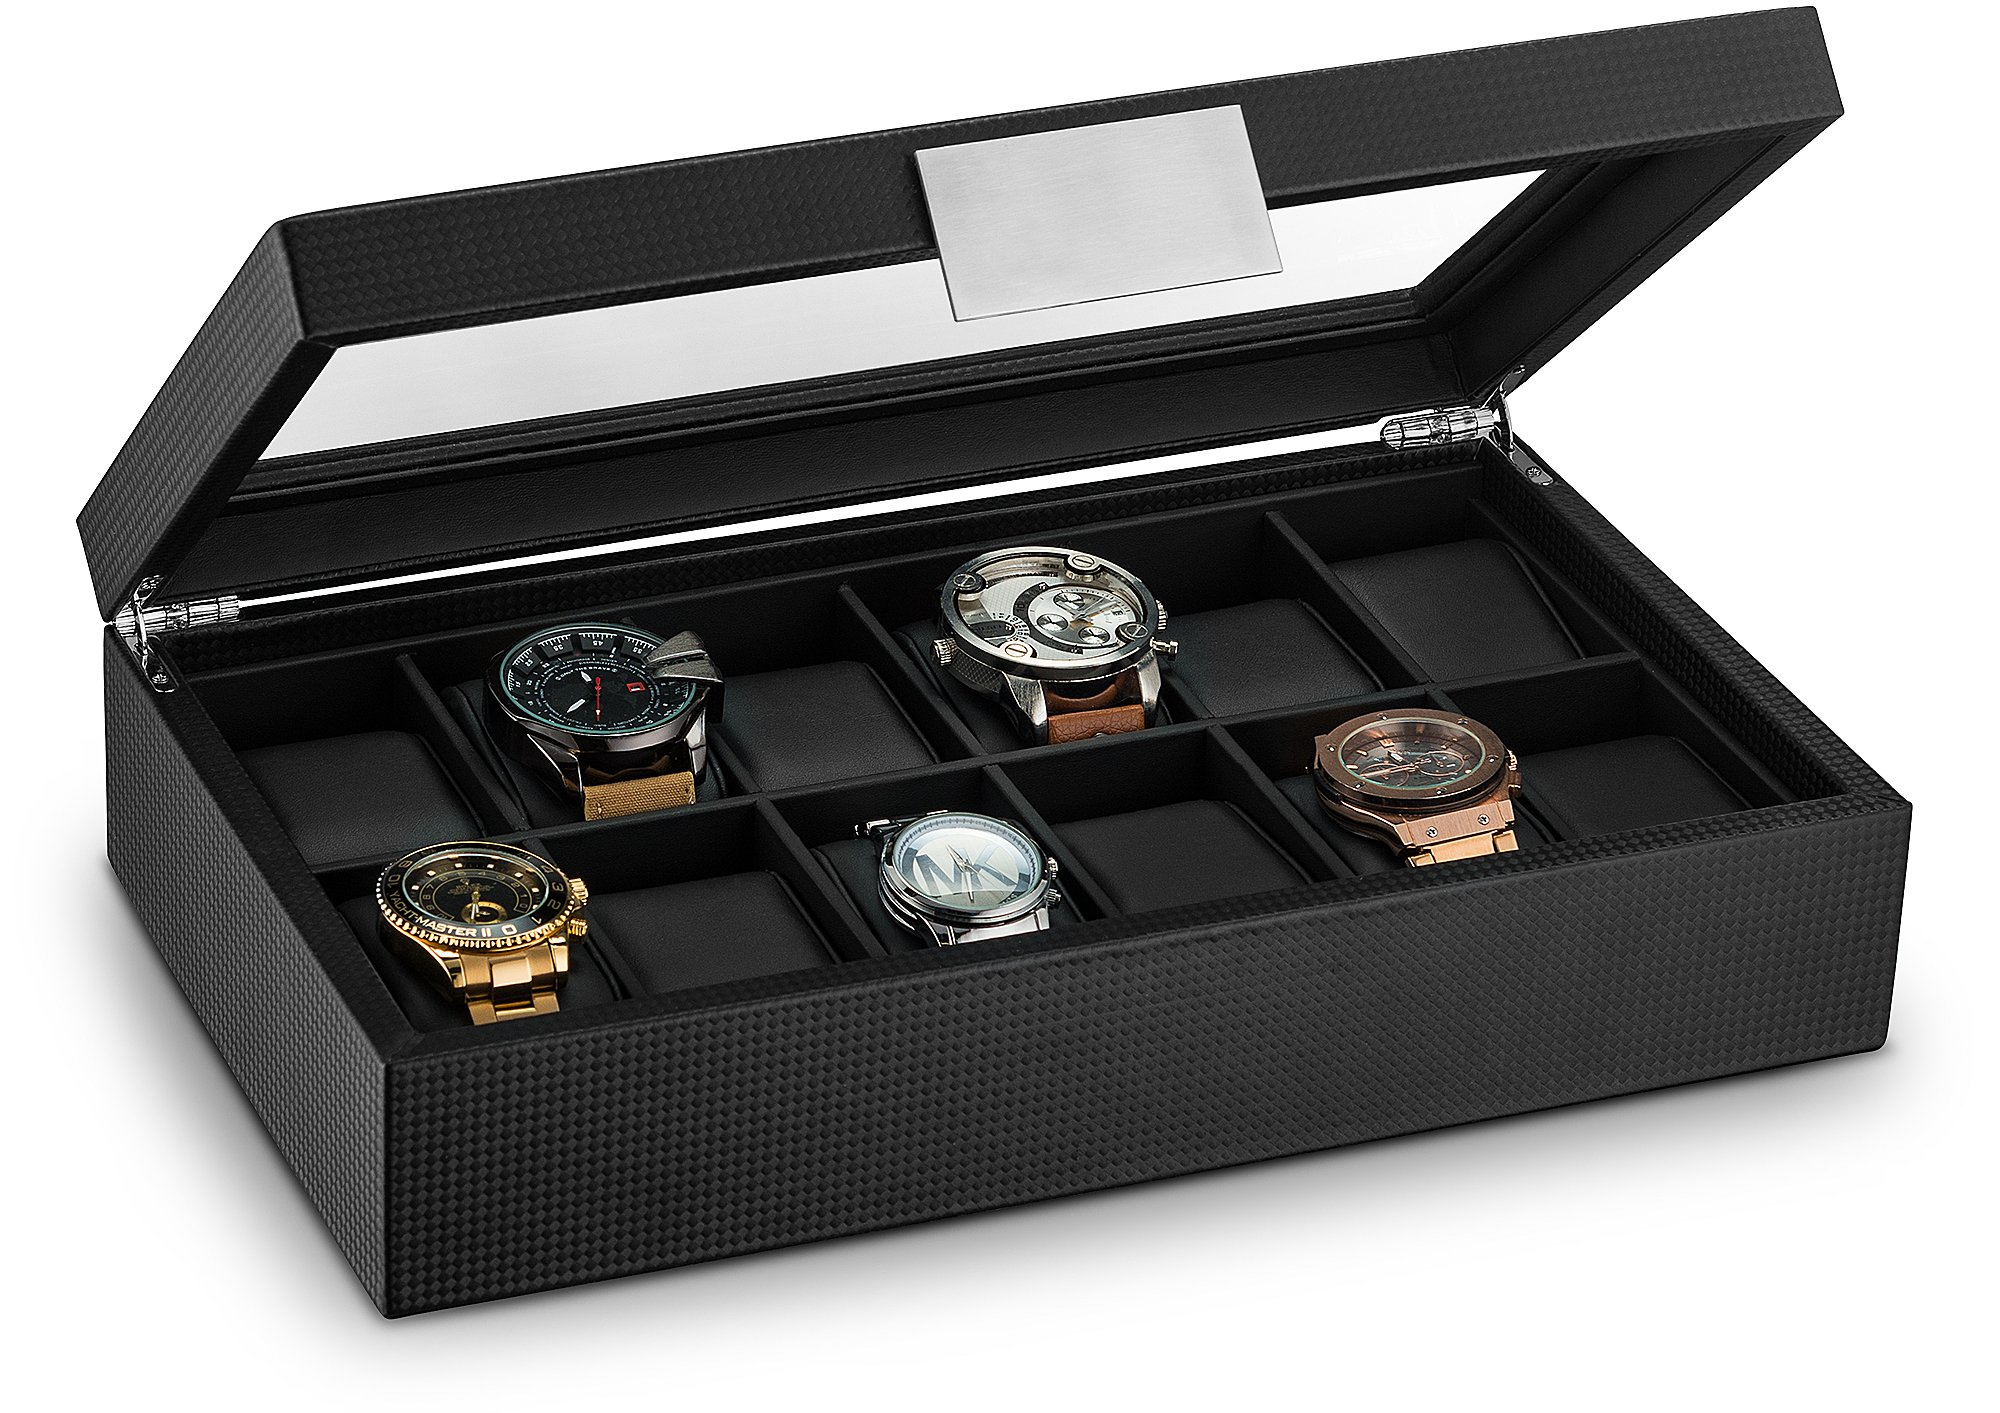 Glenor Co Watch Box Men - 12 Slot Luxury Carbon Fiber Design Display Case, Large Holder, Metal Buckle -Black